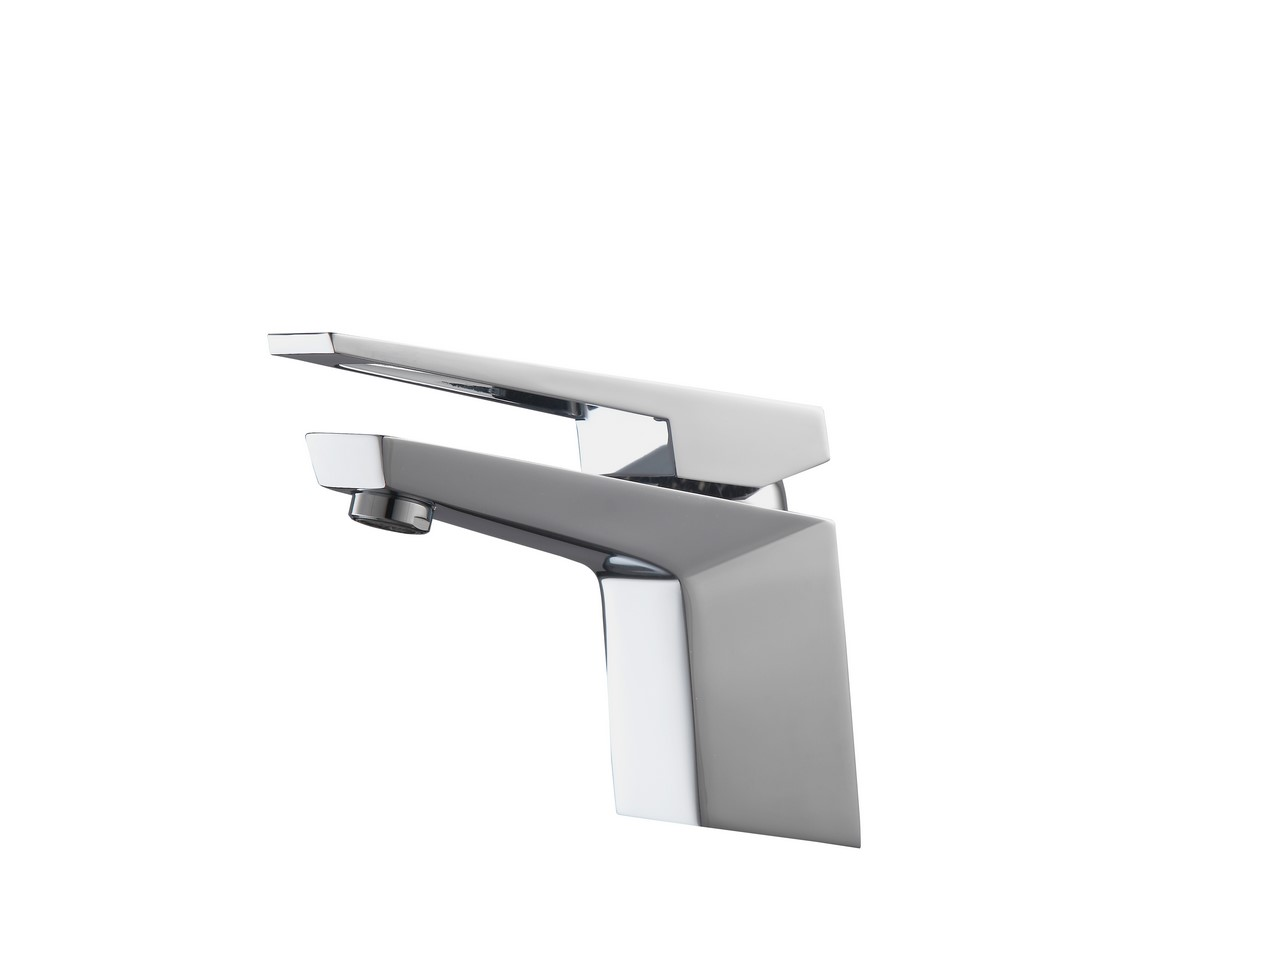 Aqua Siza Single Lever Modern Bathroom Vanity Faucet - Chrome - KUBEBATH